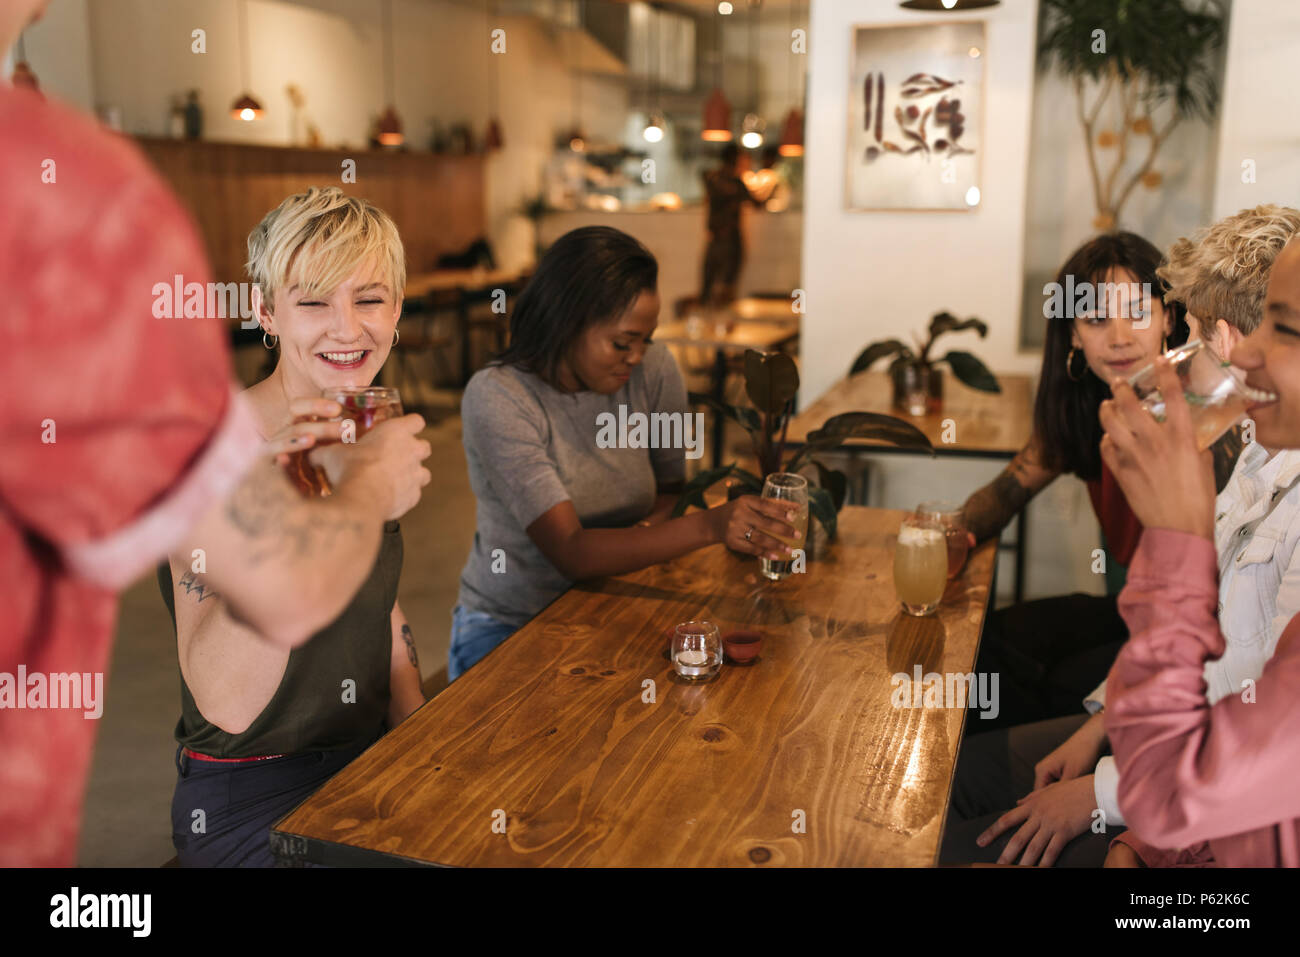 Group of smiling female friends ordering drinks in a bistro - Stock Image